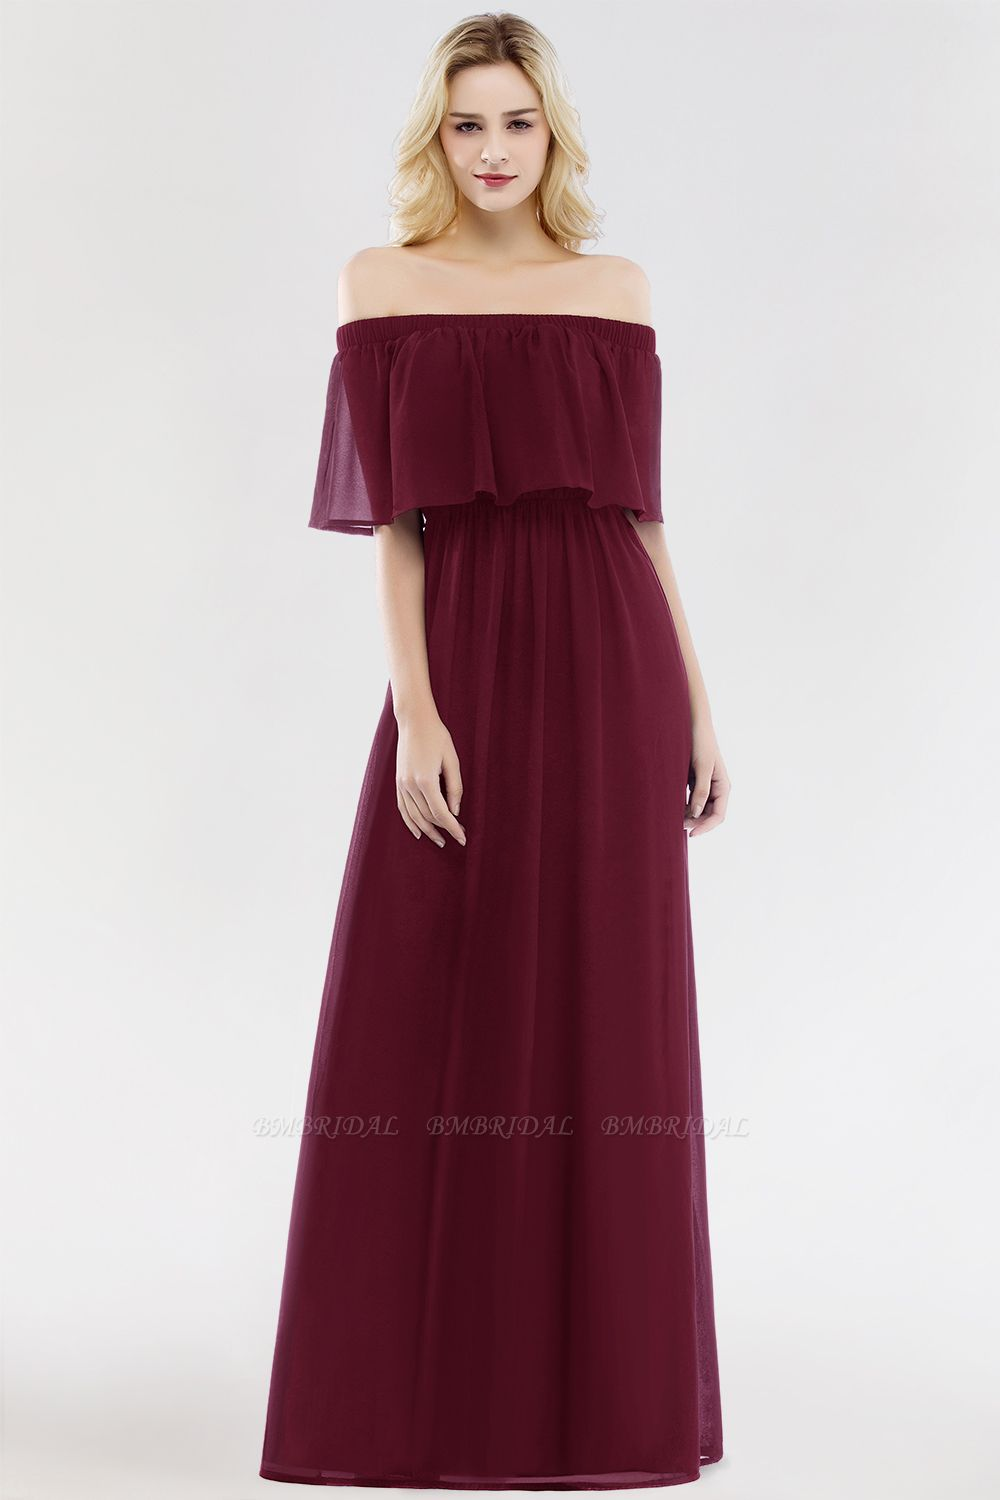 Vintage Off-the-Shoulder Long Burgundy Bridesmaid Dress with Ruffle